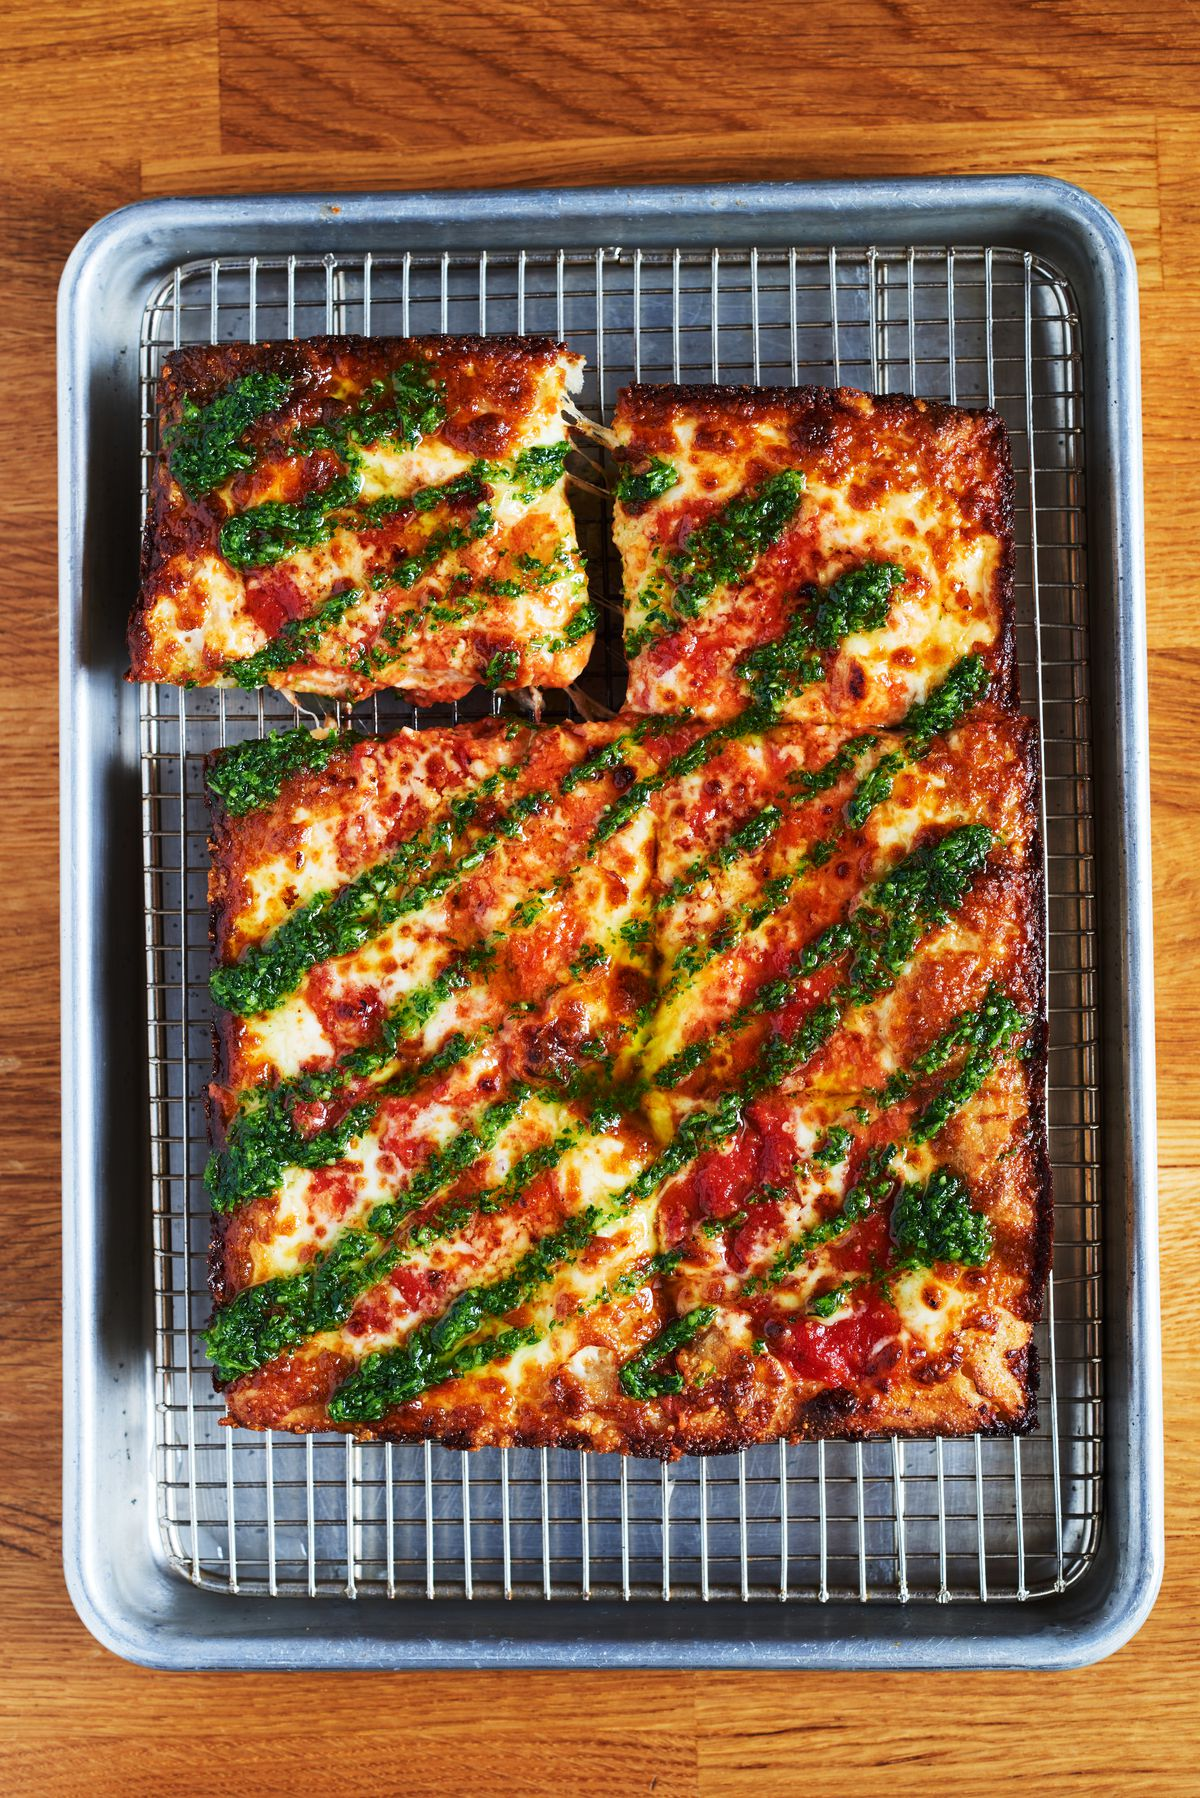 Six, thick square slices of the MVP pizza topped with red sauce, vodka sauce, drizzled with bright green pesto